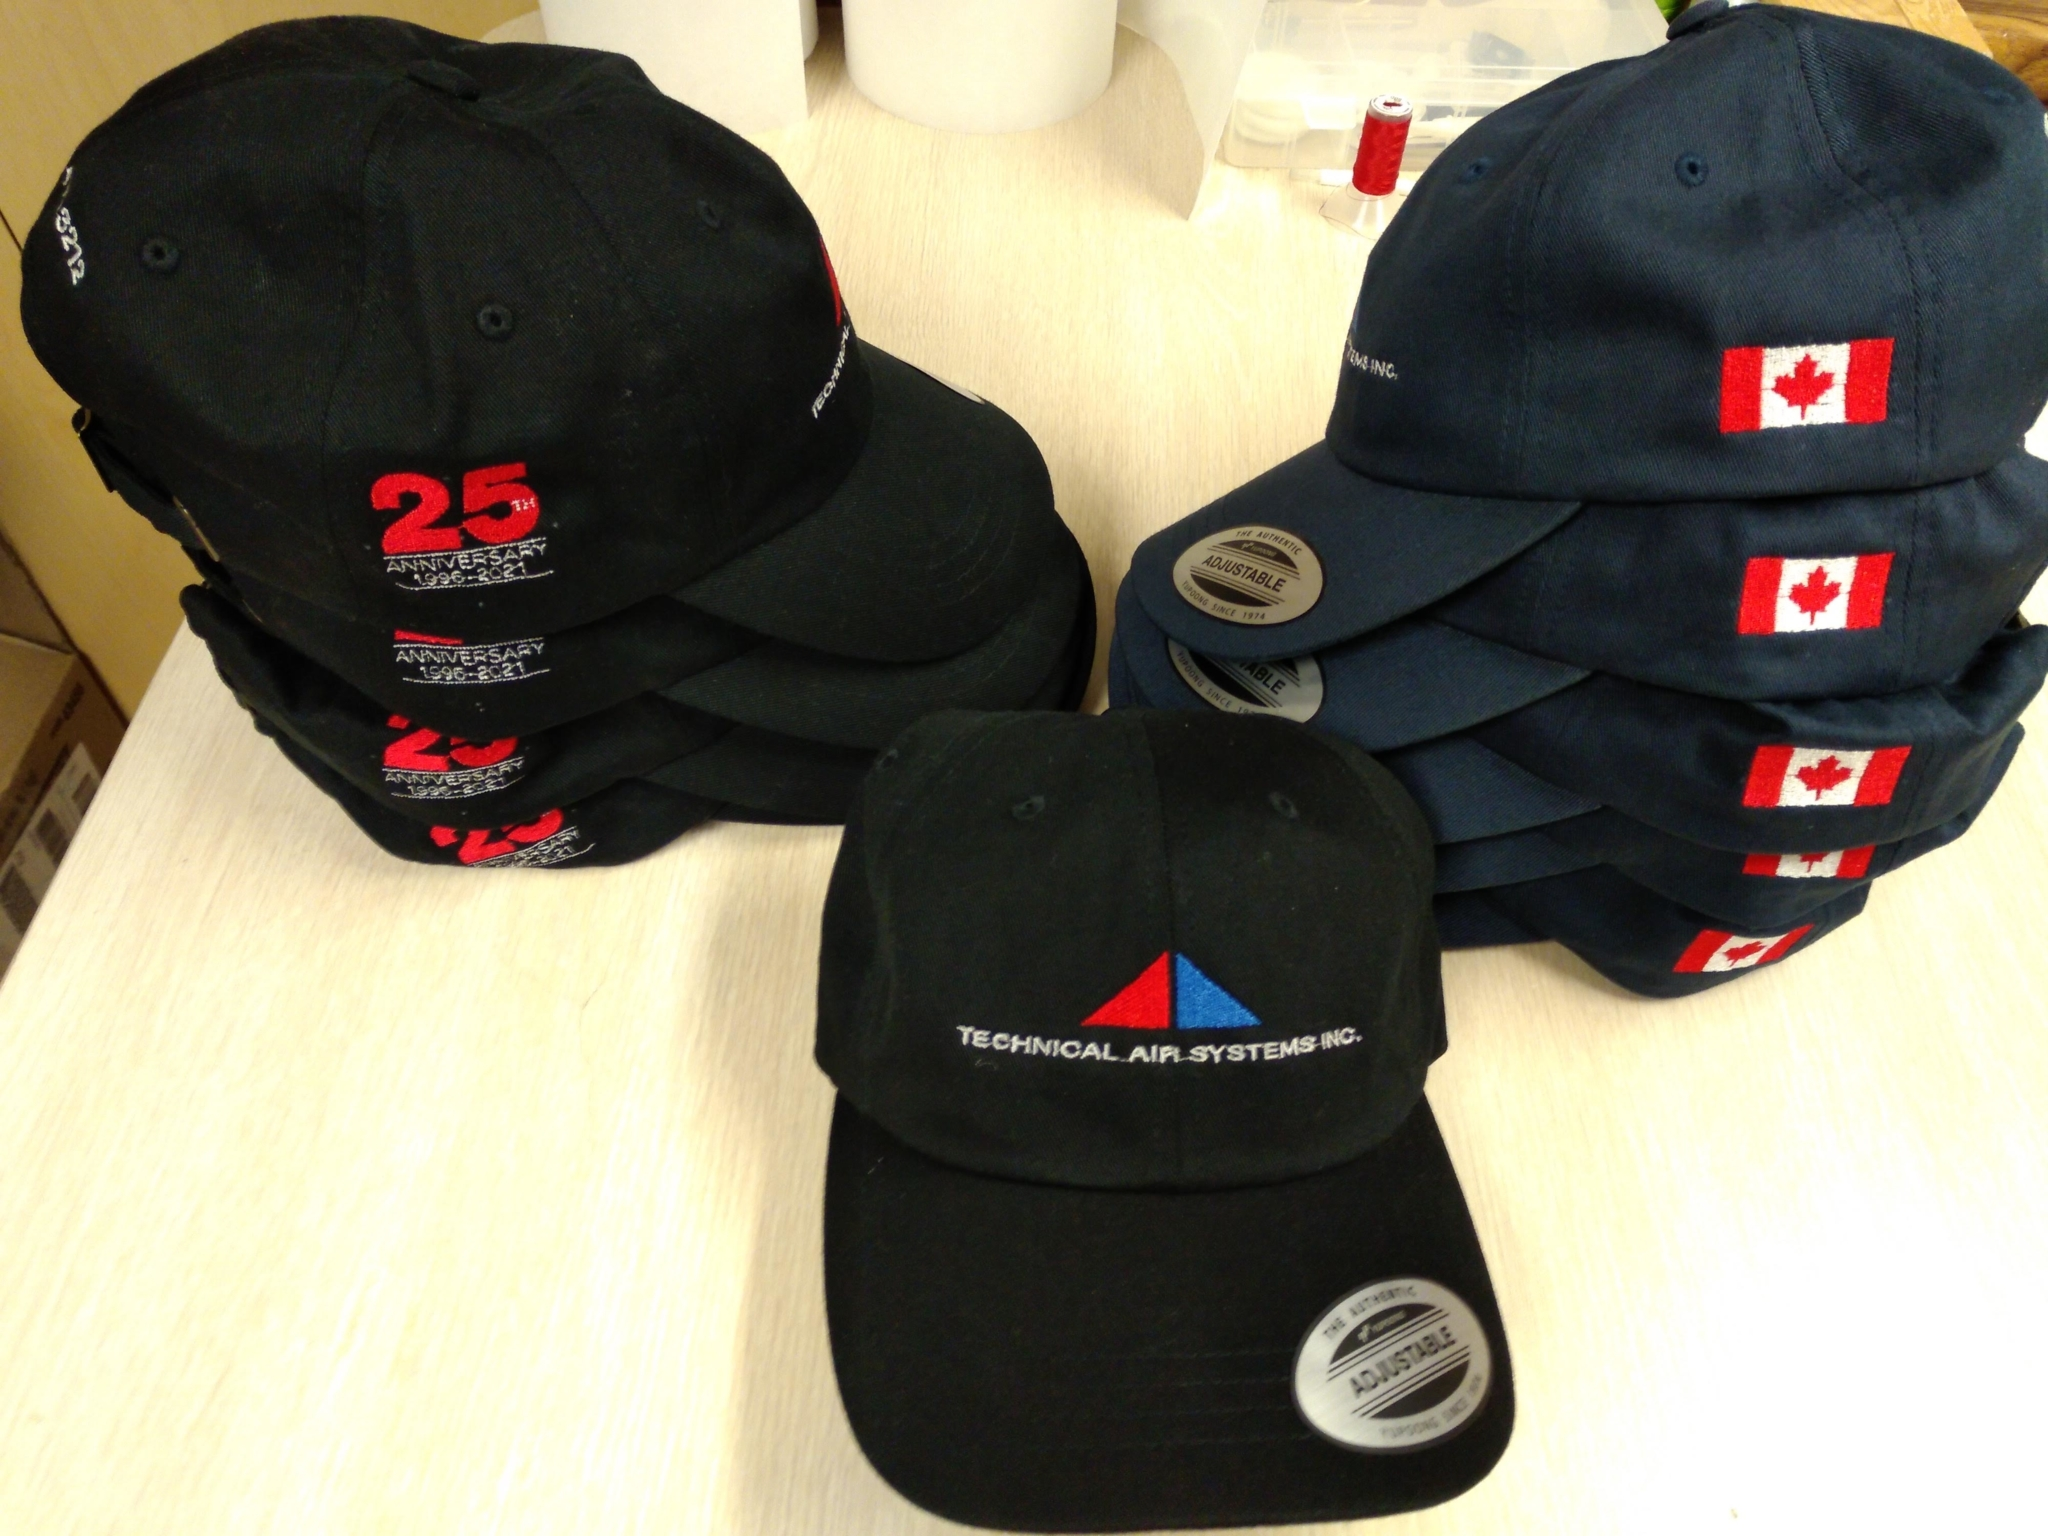 Just My Lids in Scarborough: We provide custom embroidered hats for all types of business or for personal use. We accept volume orders.